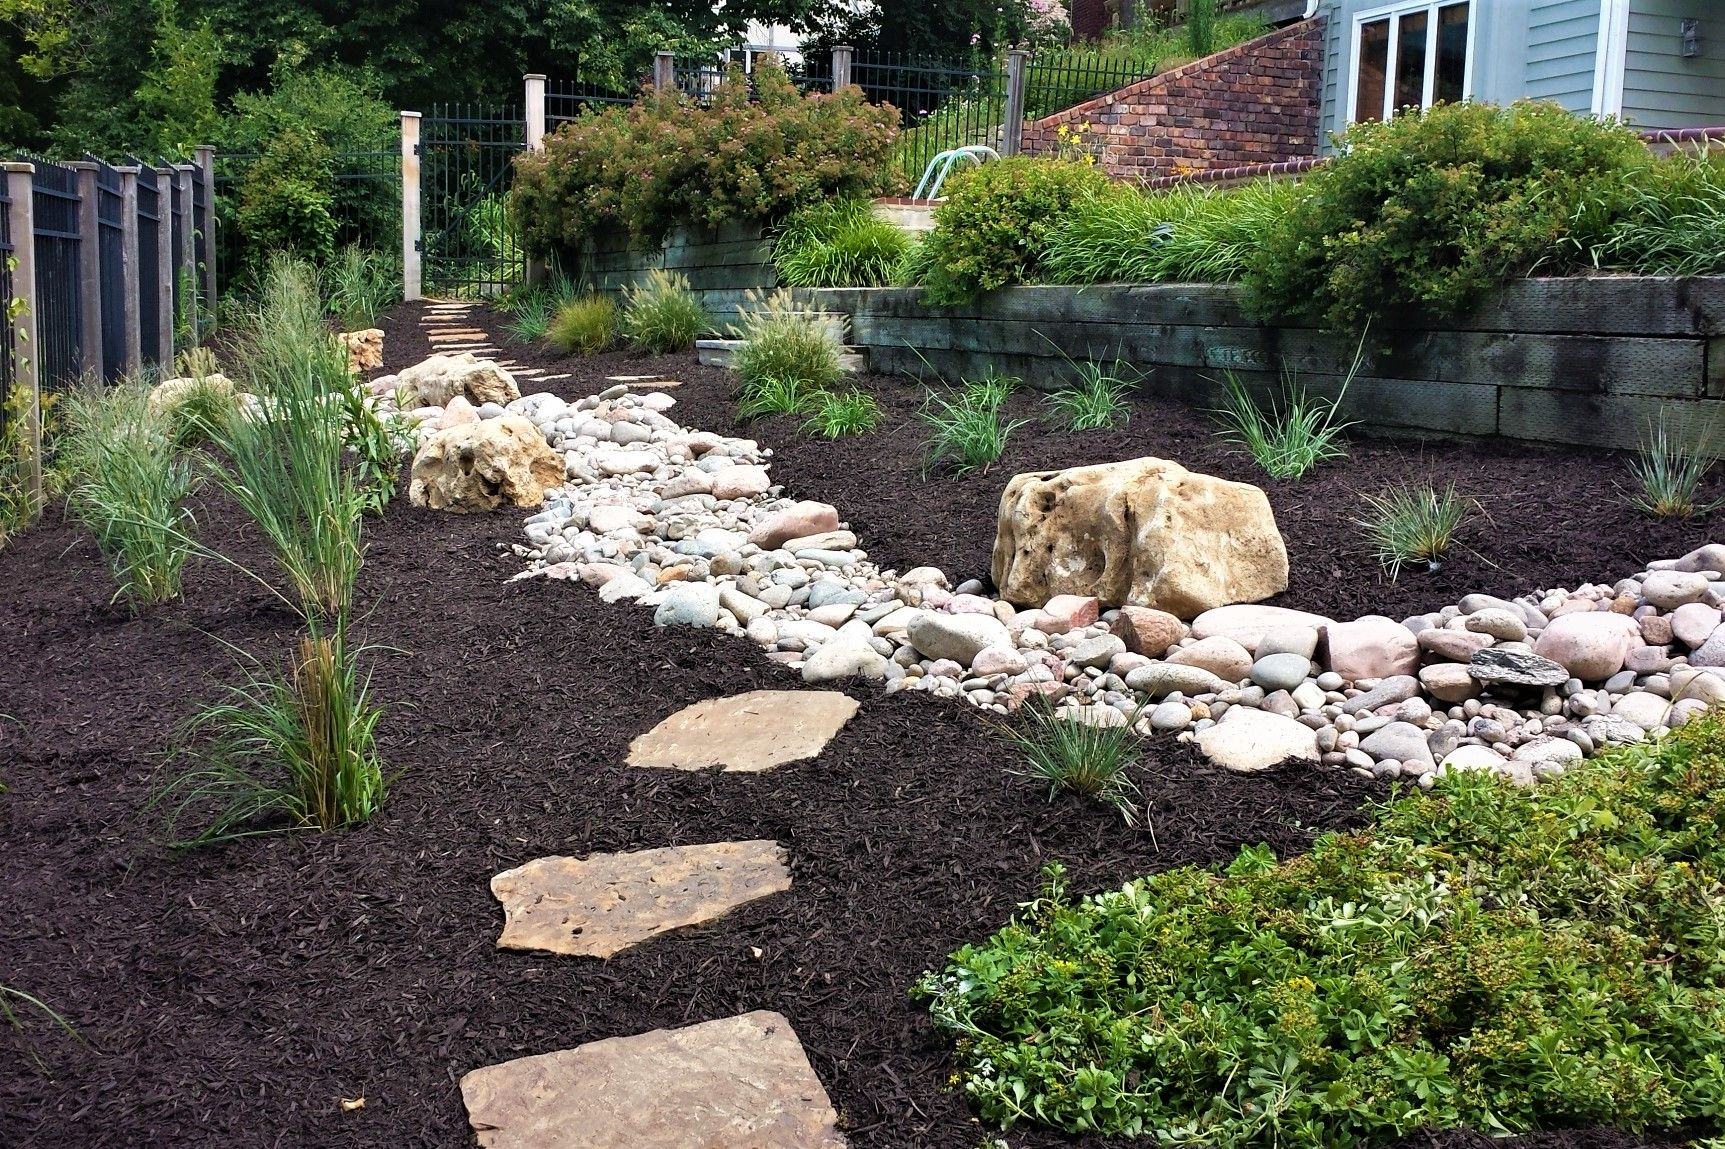 Dry Creek Bed And Plant Material Lawrencelandscape Gallery Landscaping Landscapedesign Yard Flagstone Stone Landscaping Landscape Design Home Landscaping